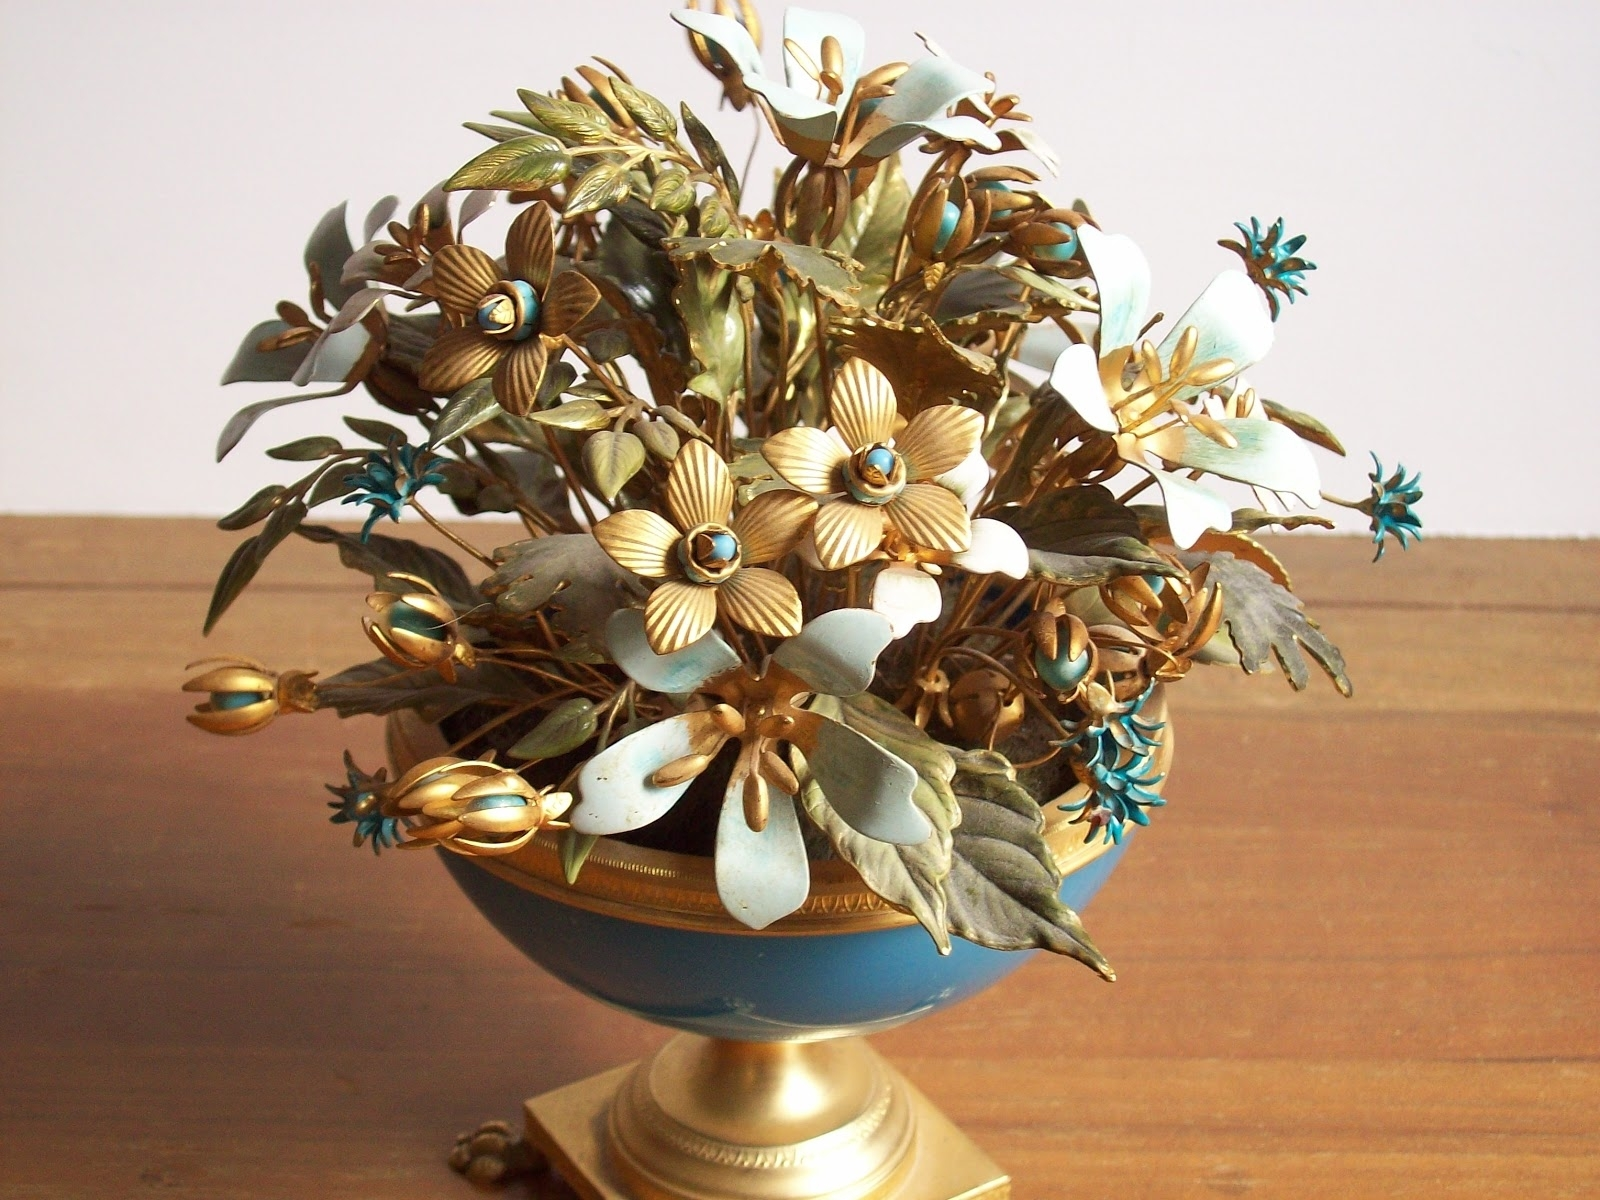 Flower Dry Arrangement Ideas With Natural Nuance Inside The Dry And ...